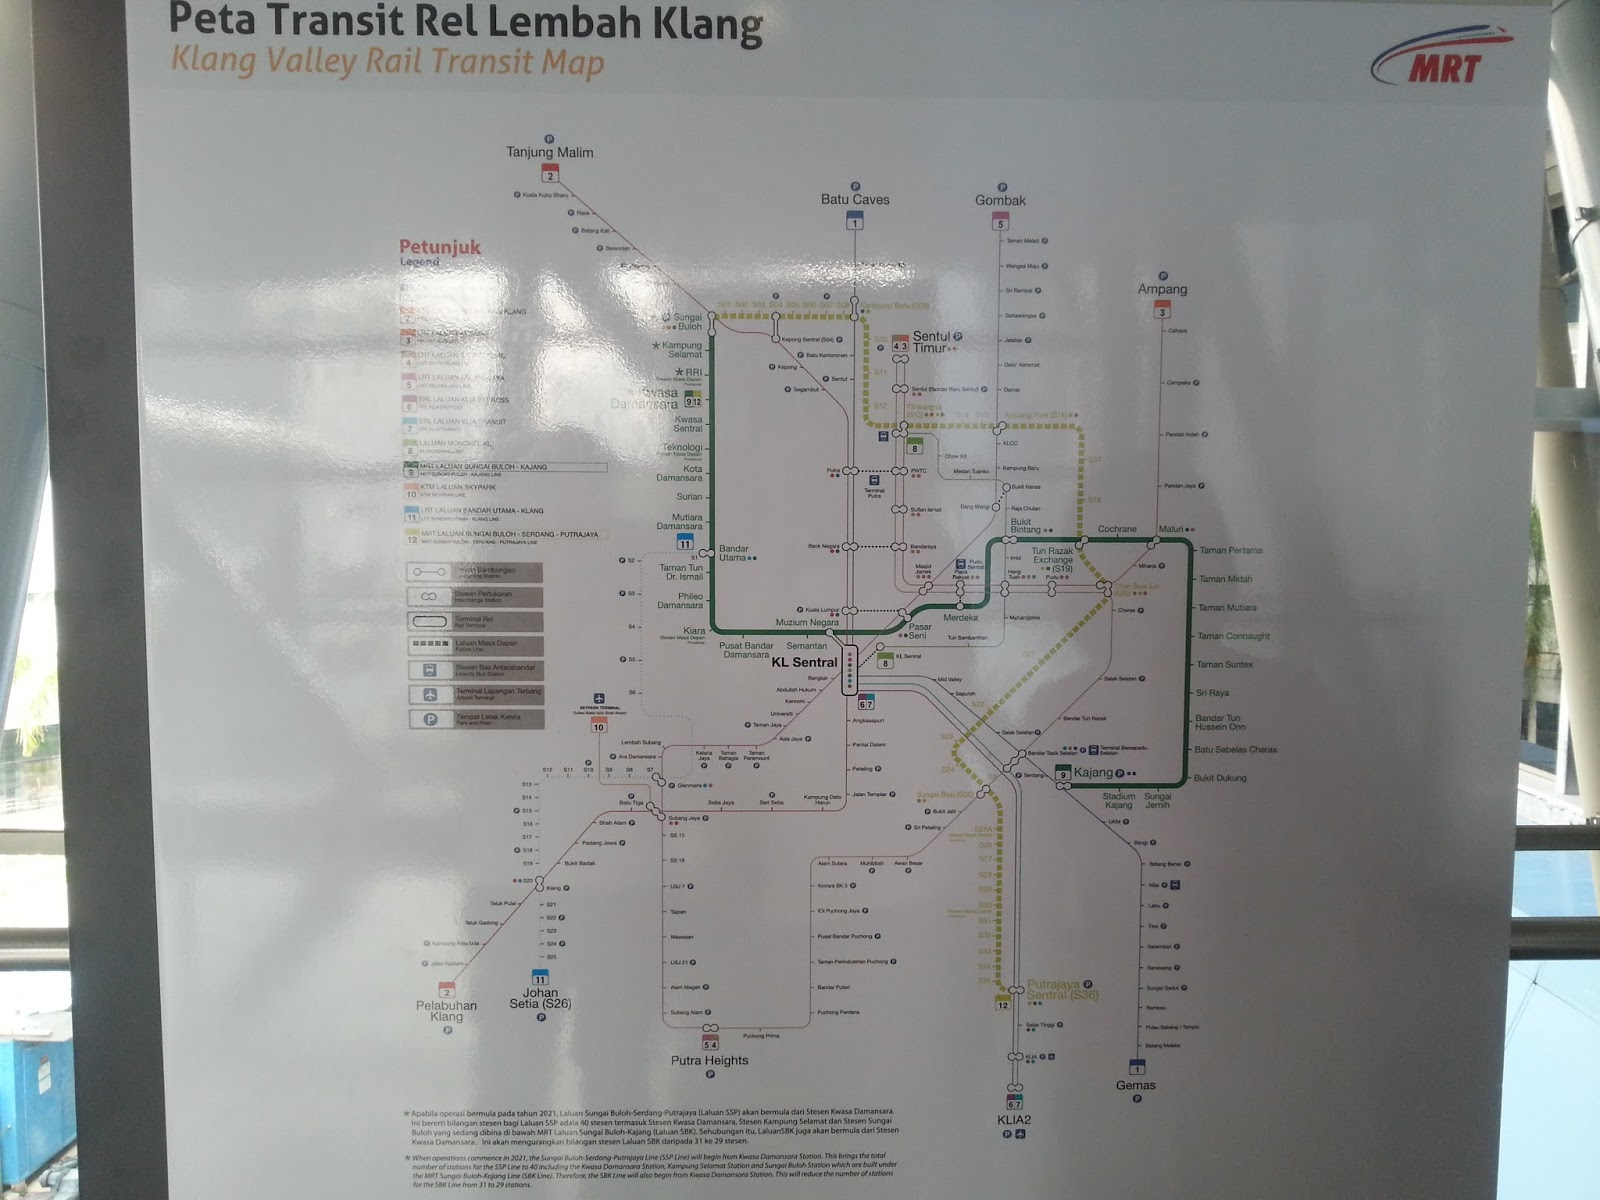 at the stations huge boards showing the entire public transportation network are displayed prominently to visitors